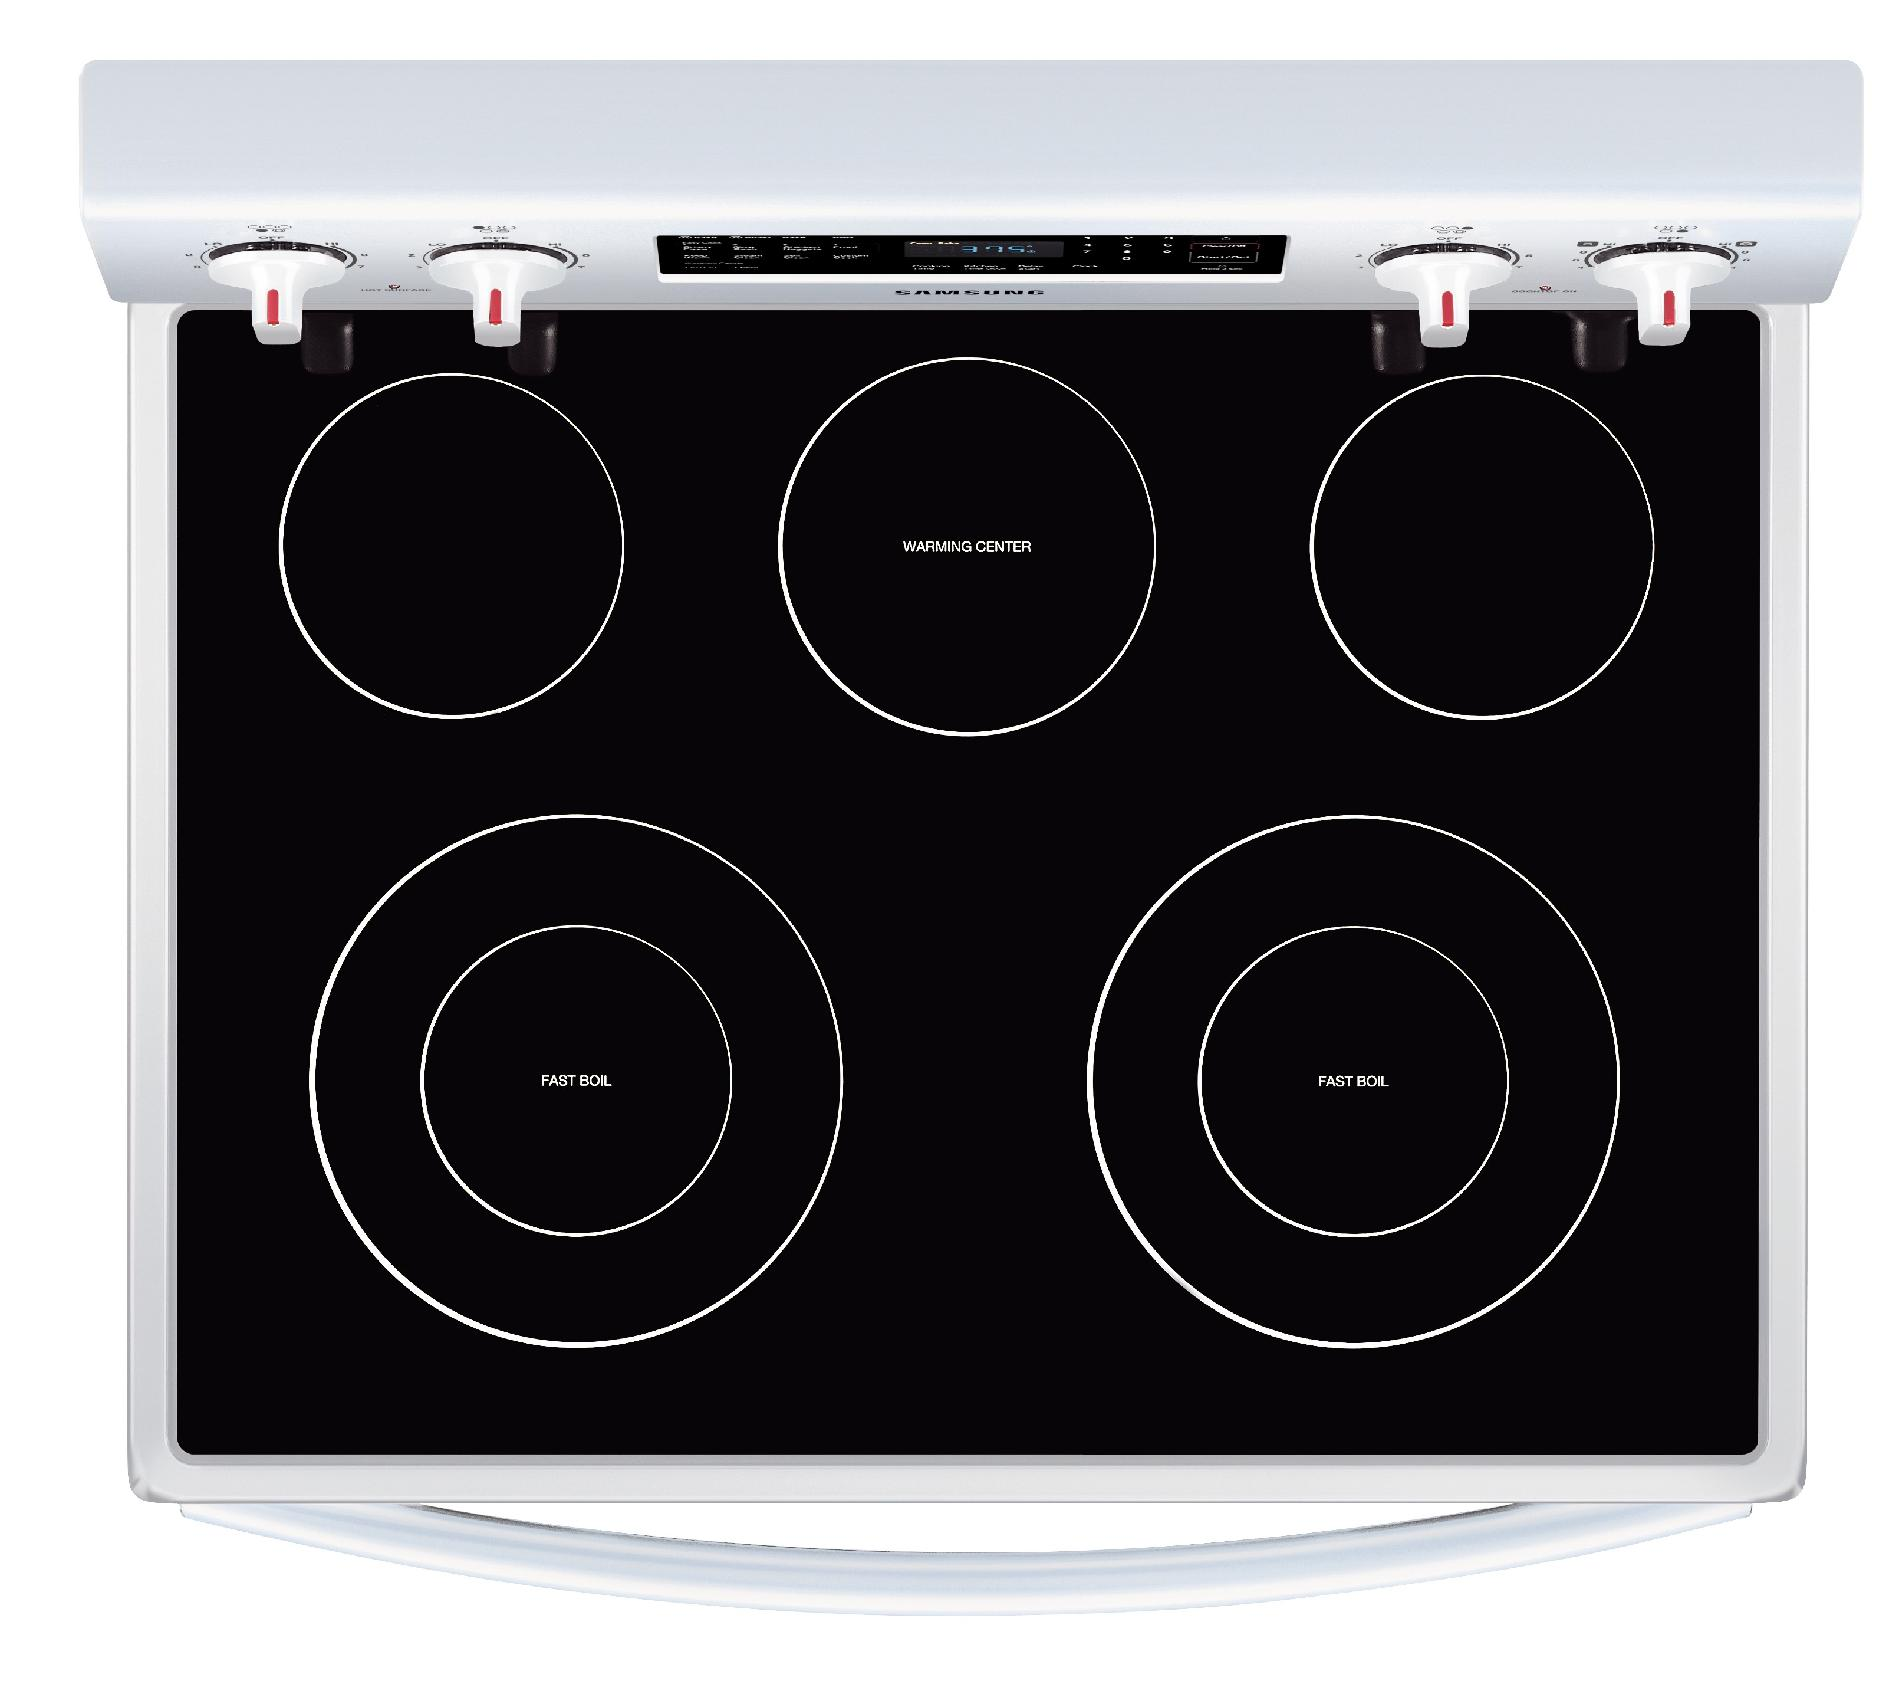 Samsung 5.9 cu. ft. Electric Range w/Convection - White